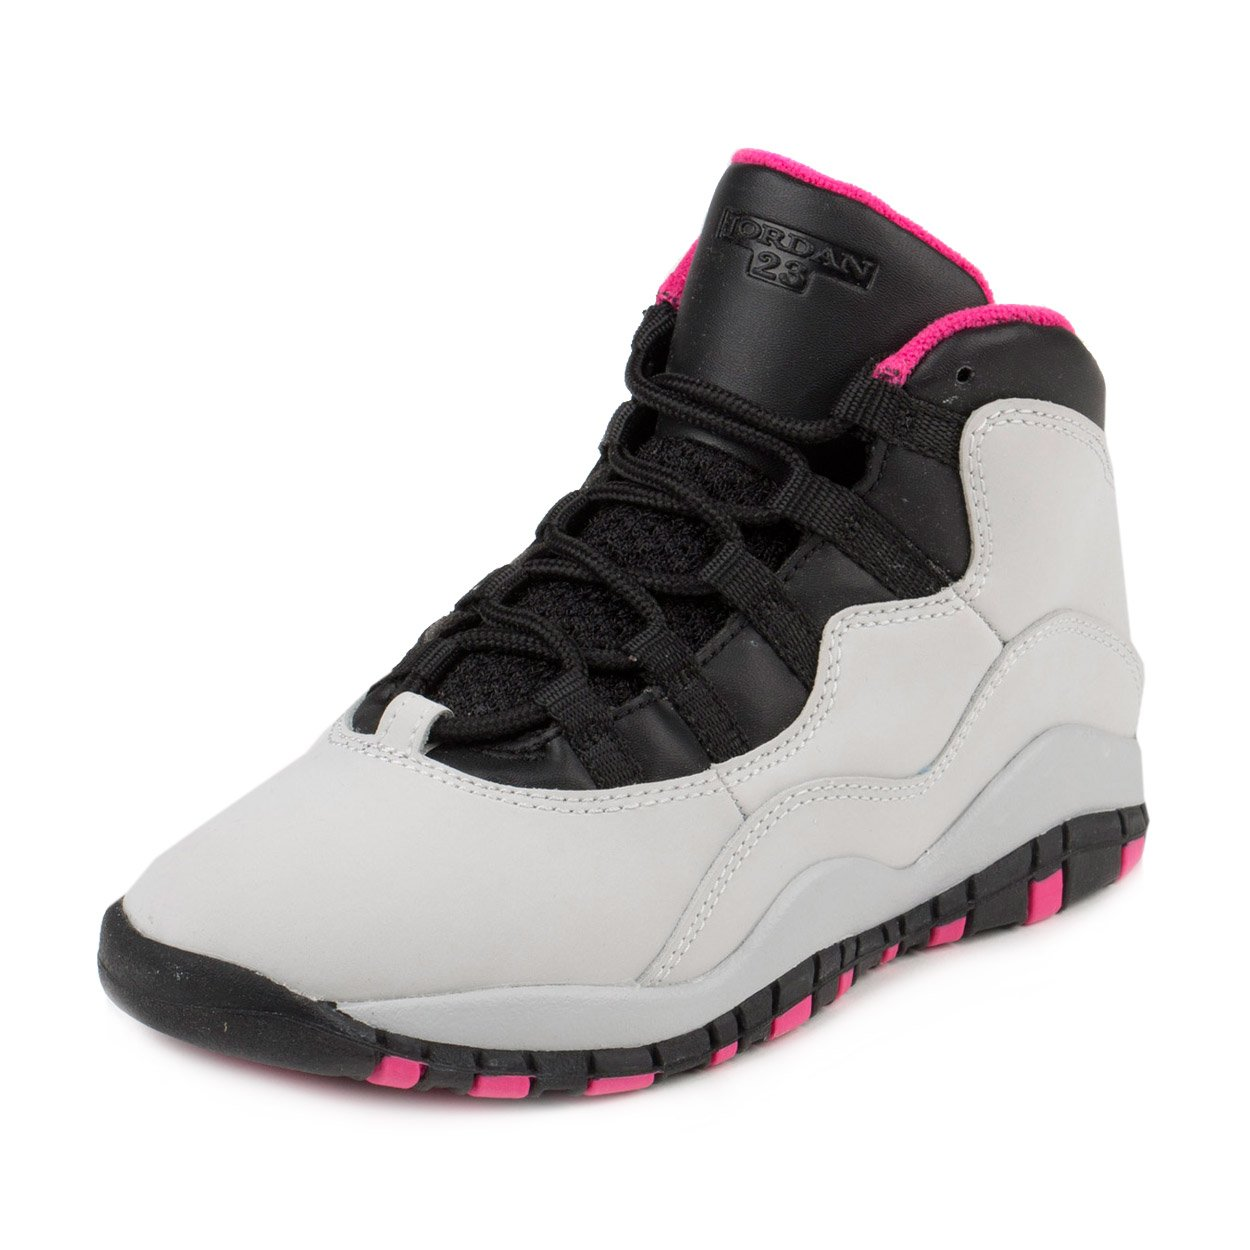 Nike Jordan Kids Jordan 10 Retro Gp Pure Platinum/Vivid Pink/Black Basketball Shoe 1 Kids US by Jordan